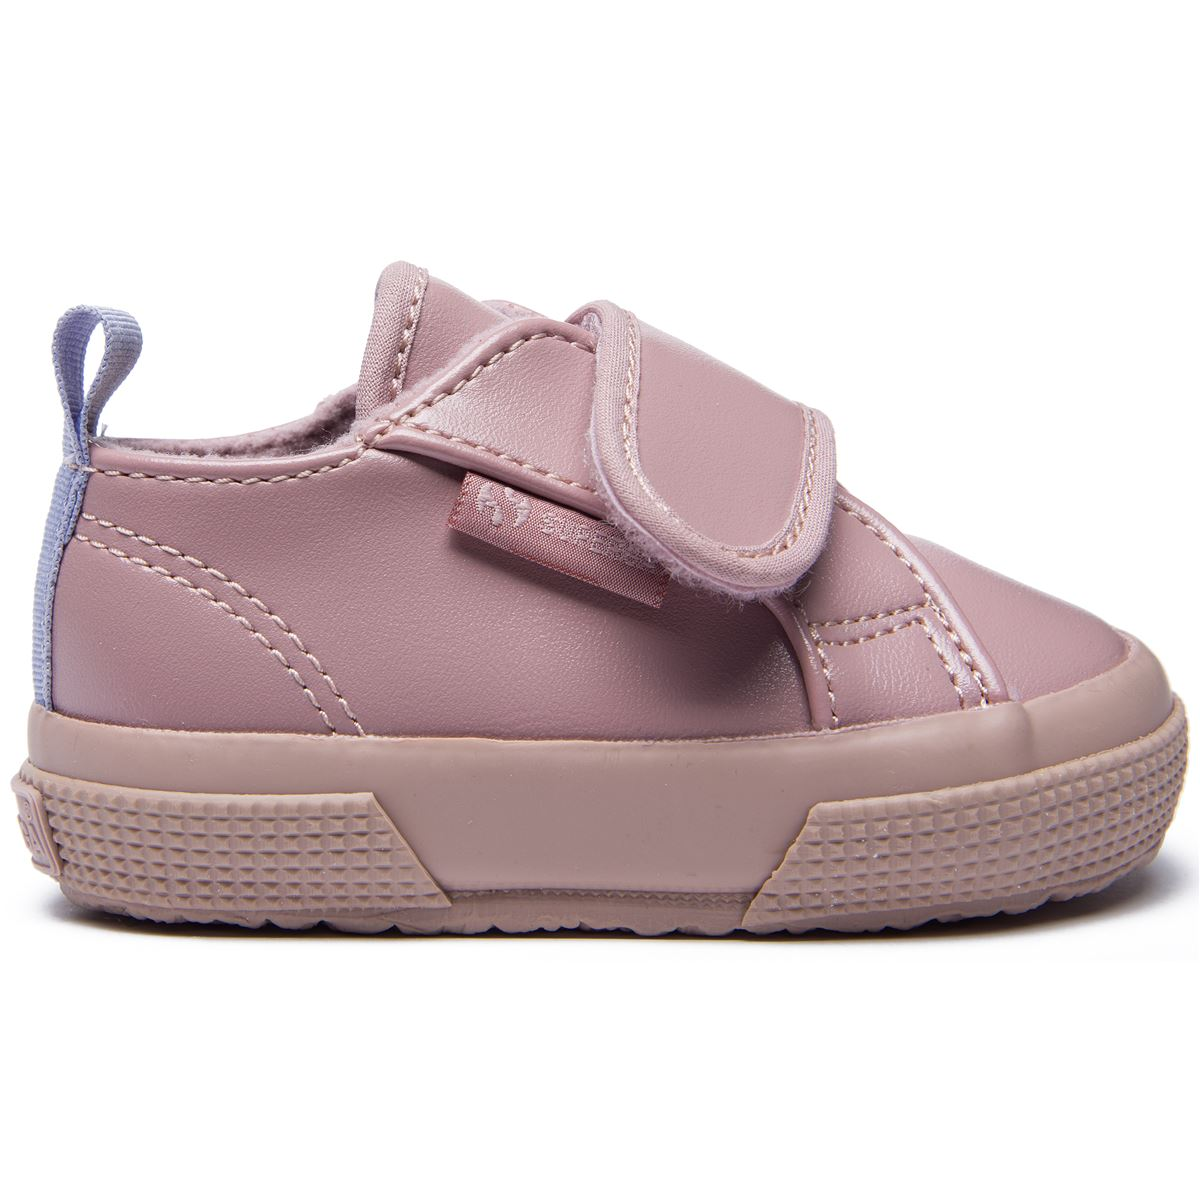 Italian Le Superga Superga for kid men and women-S111UKW